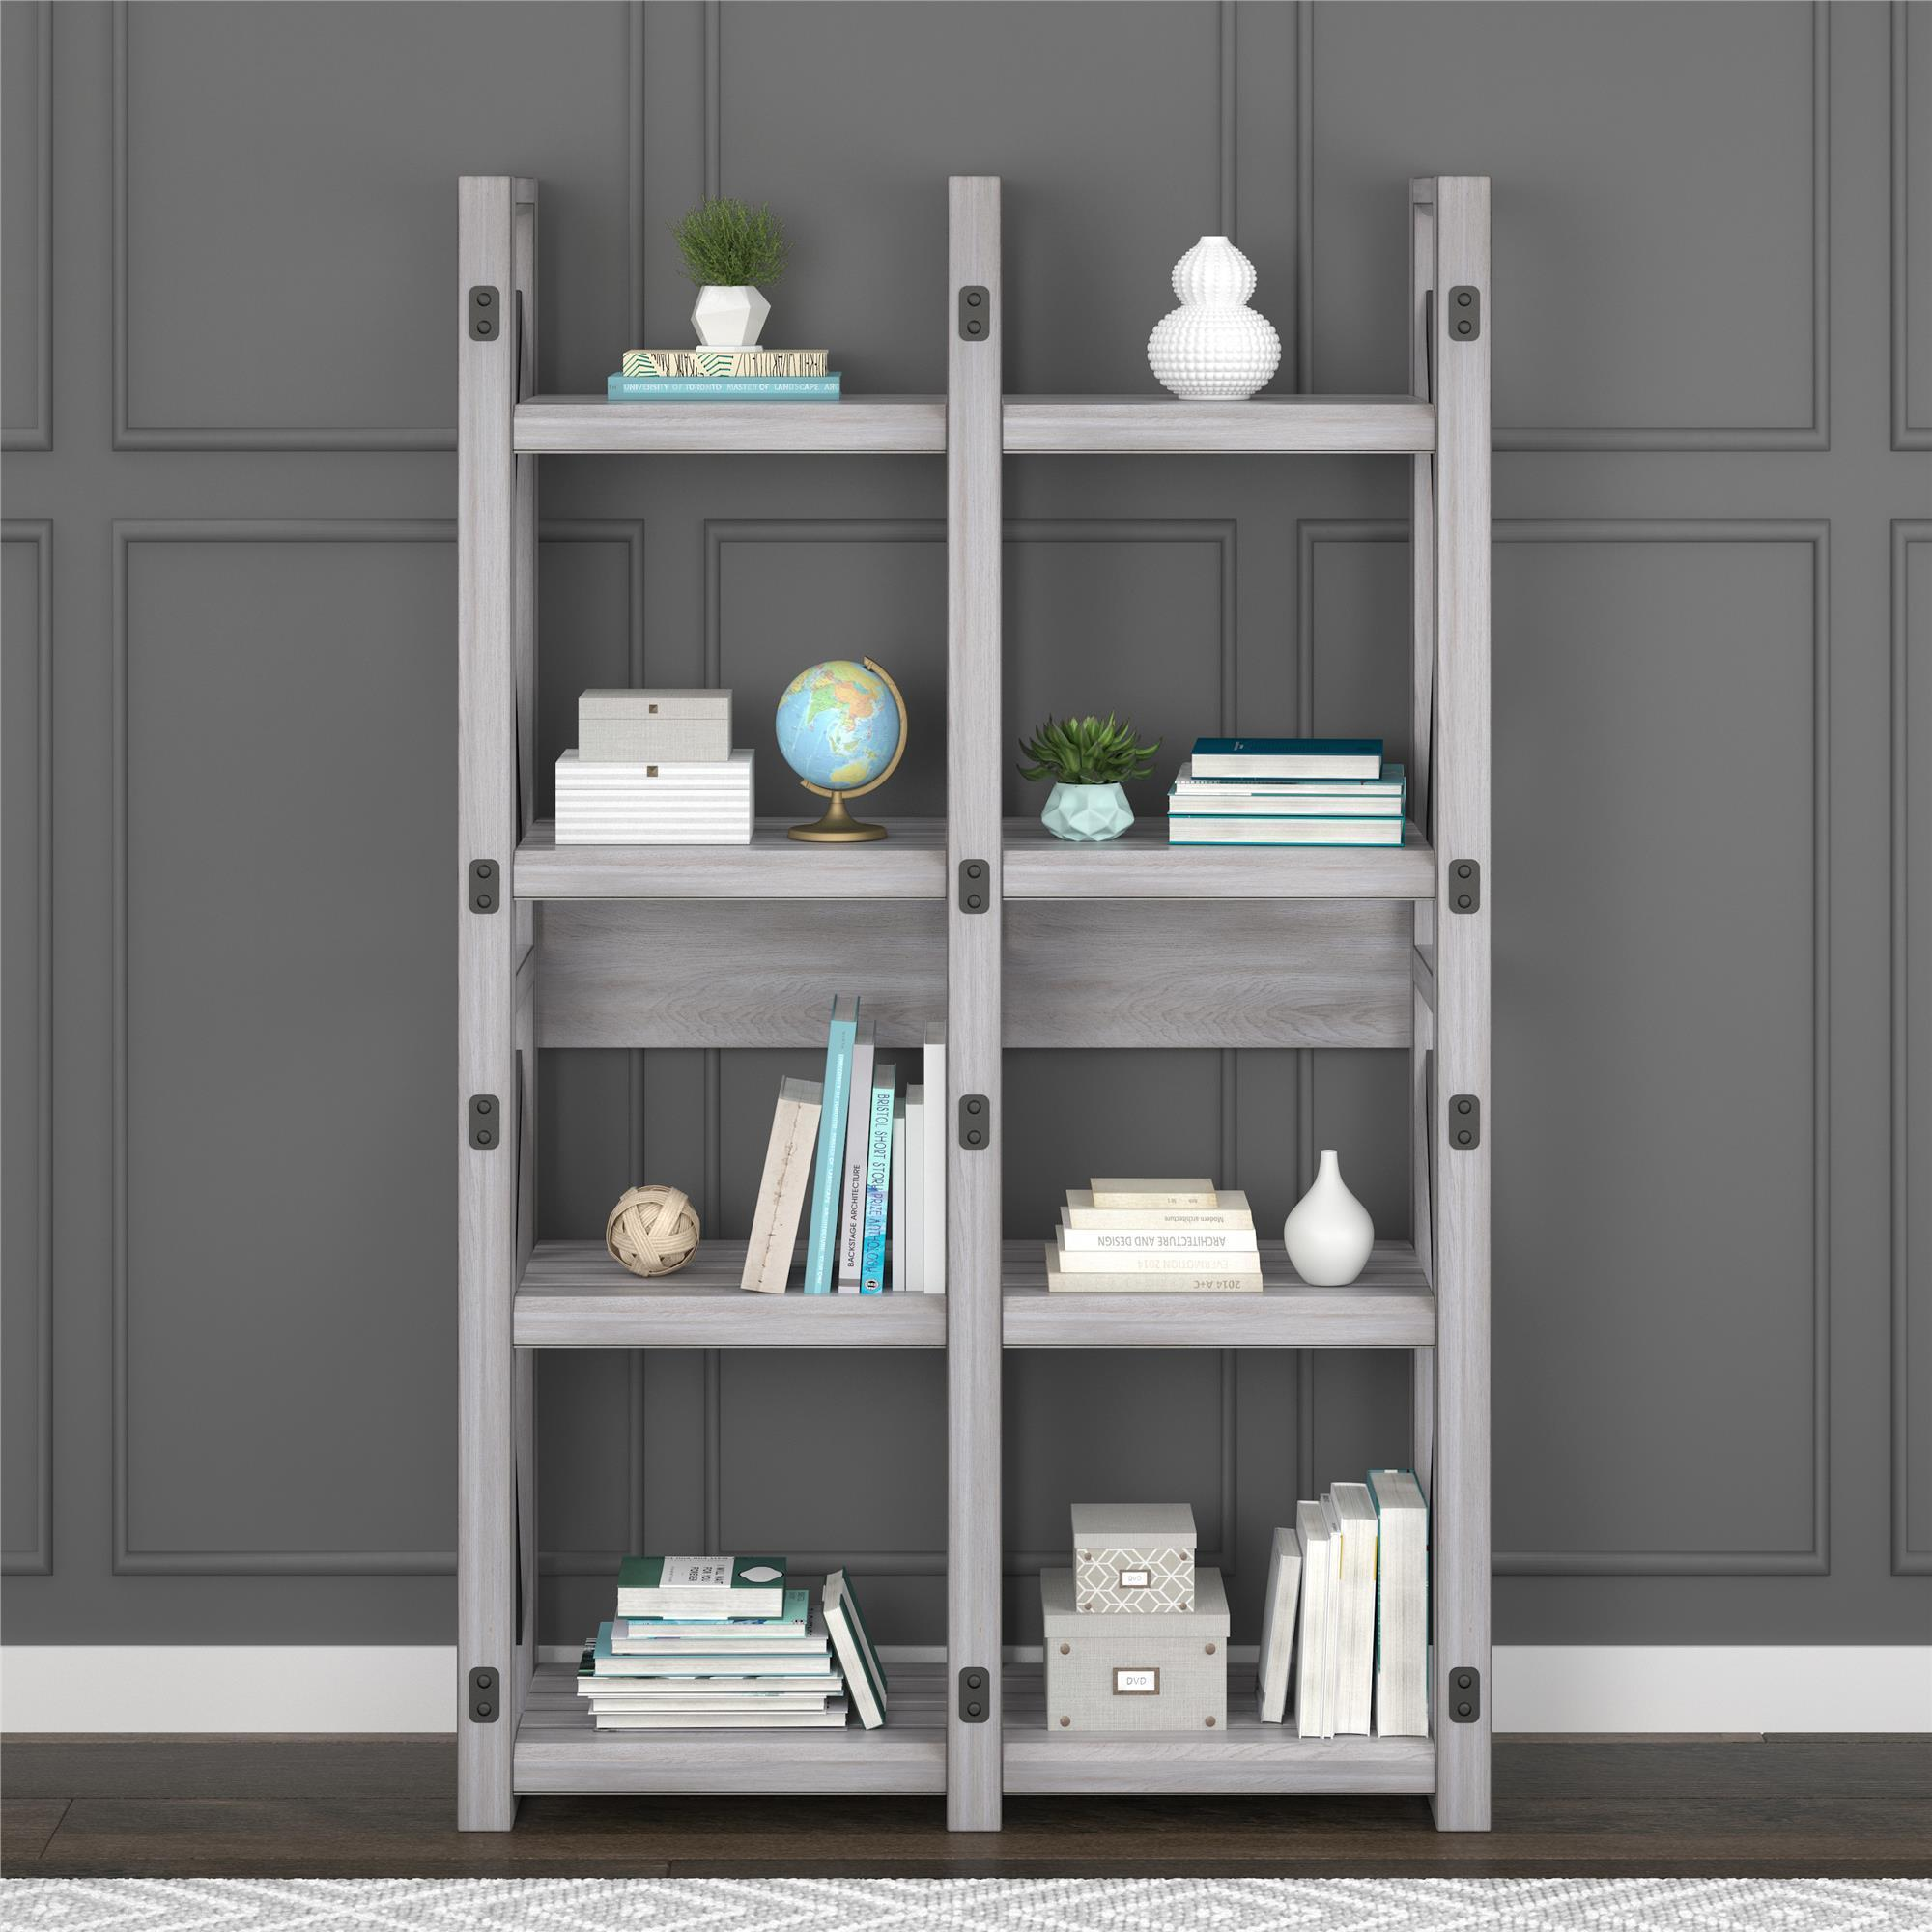 to space bookshelf needs brown divider bookcase billy adjustable between en room shelves your gb black ikea adapt according collections